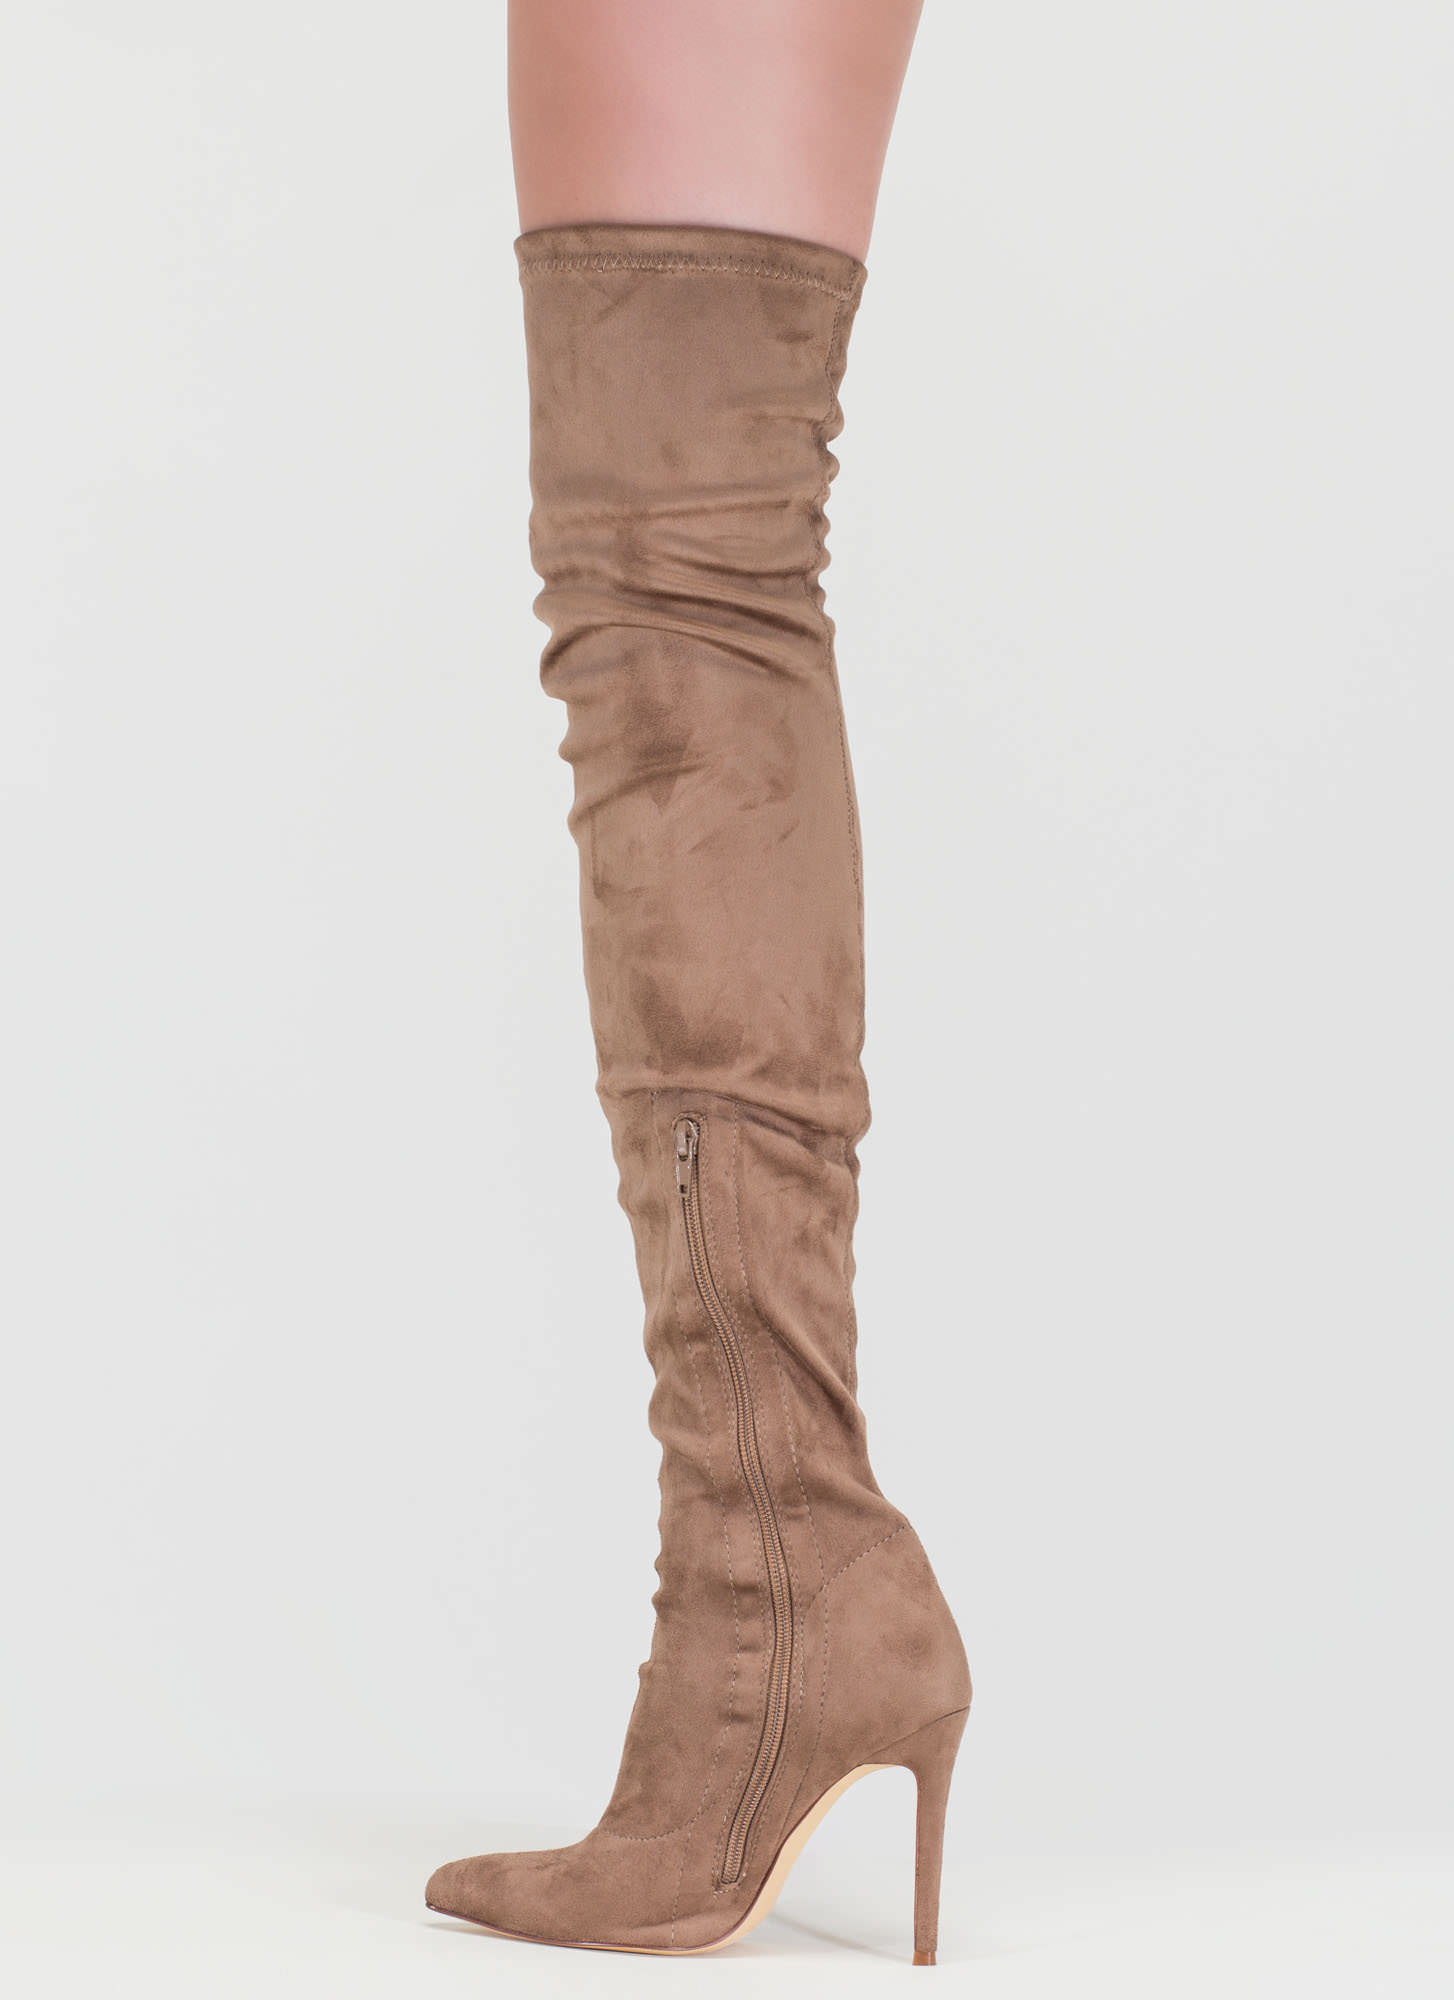 story chic thigh high boots black mauve maroon olive